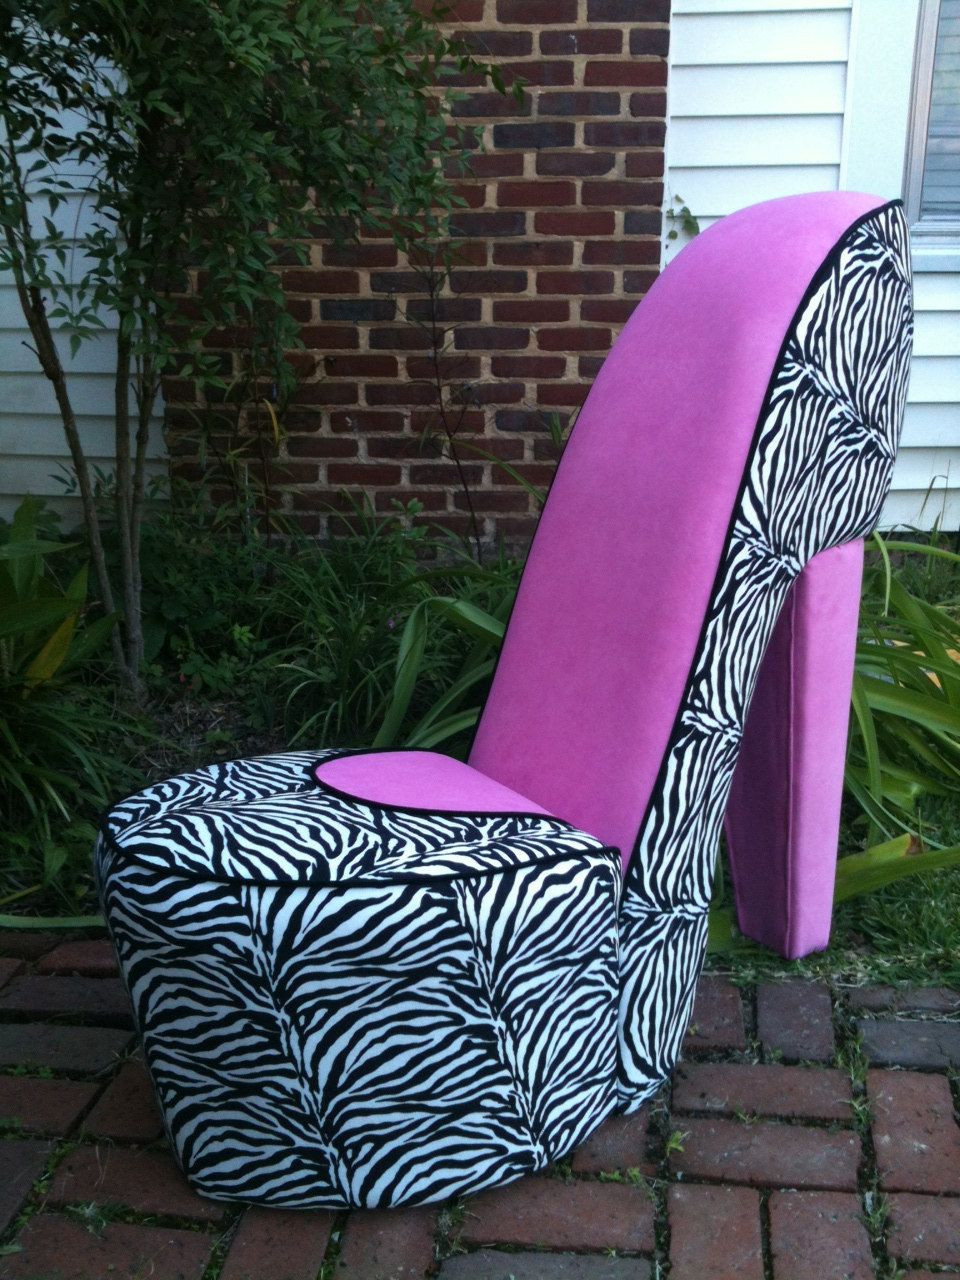 Black & cream shoe / high heel / stiletto chair with red sole ...